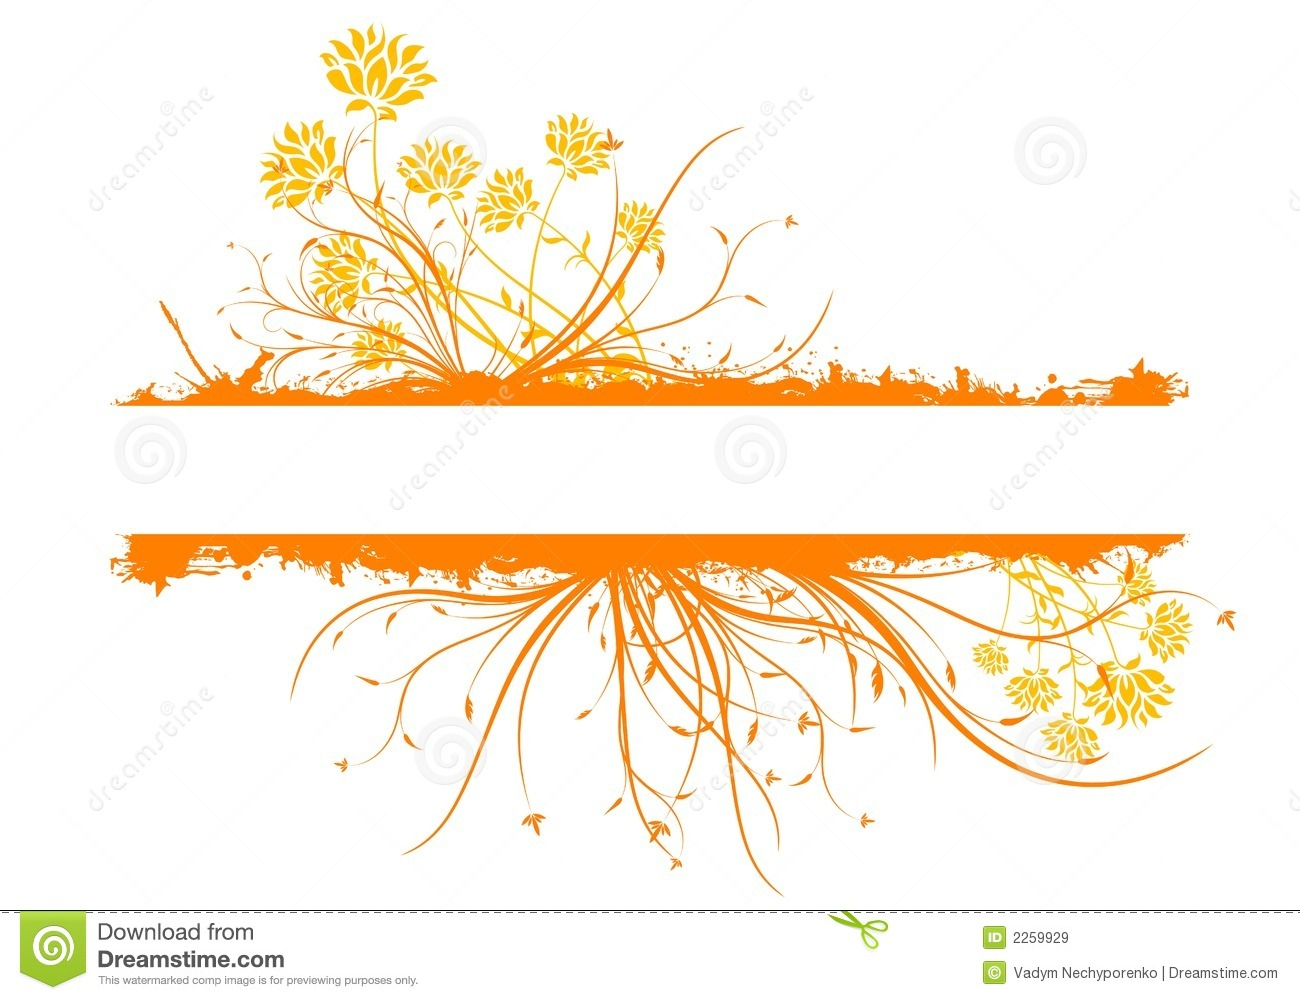 Grunge text decoration stock vector image of branches 2259929 for Decoration image